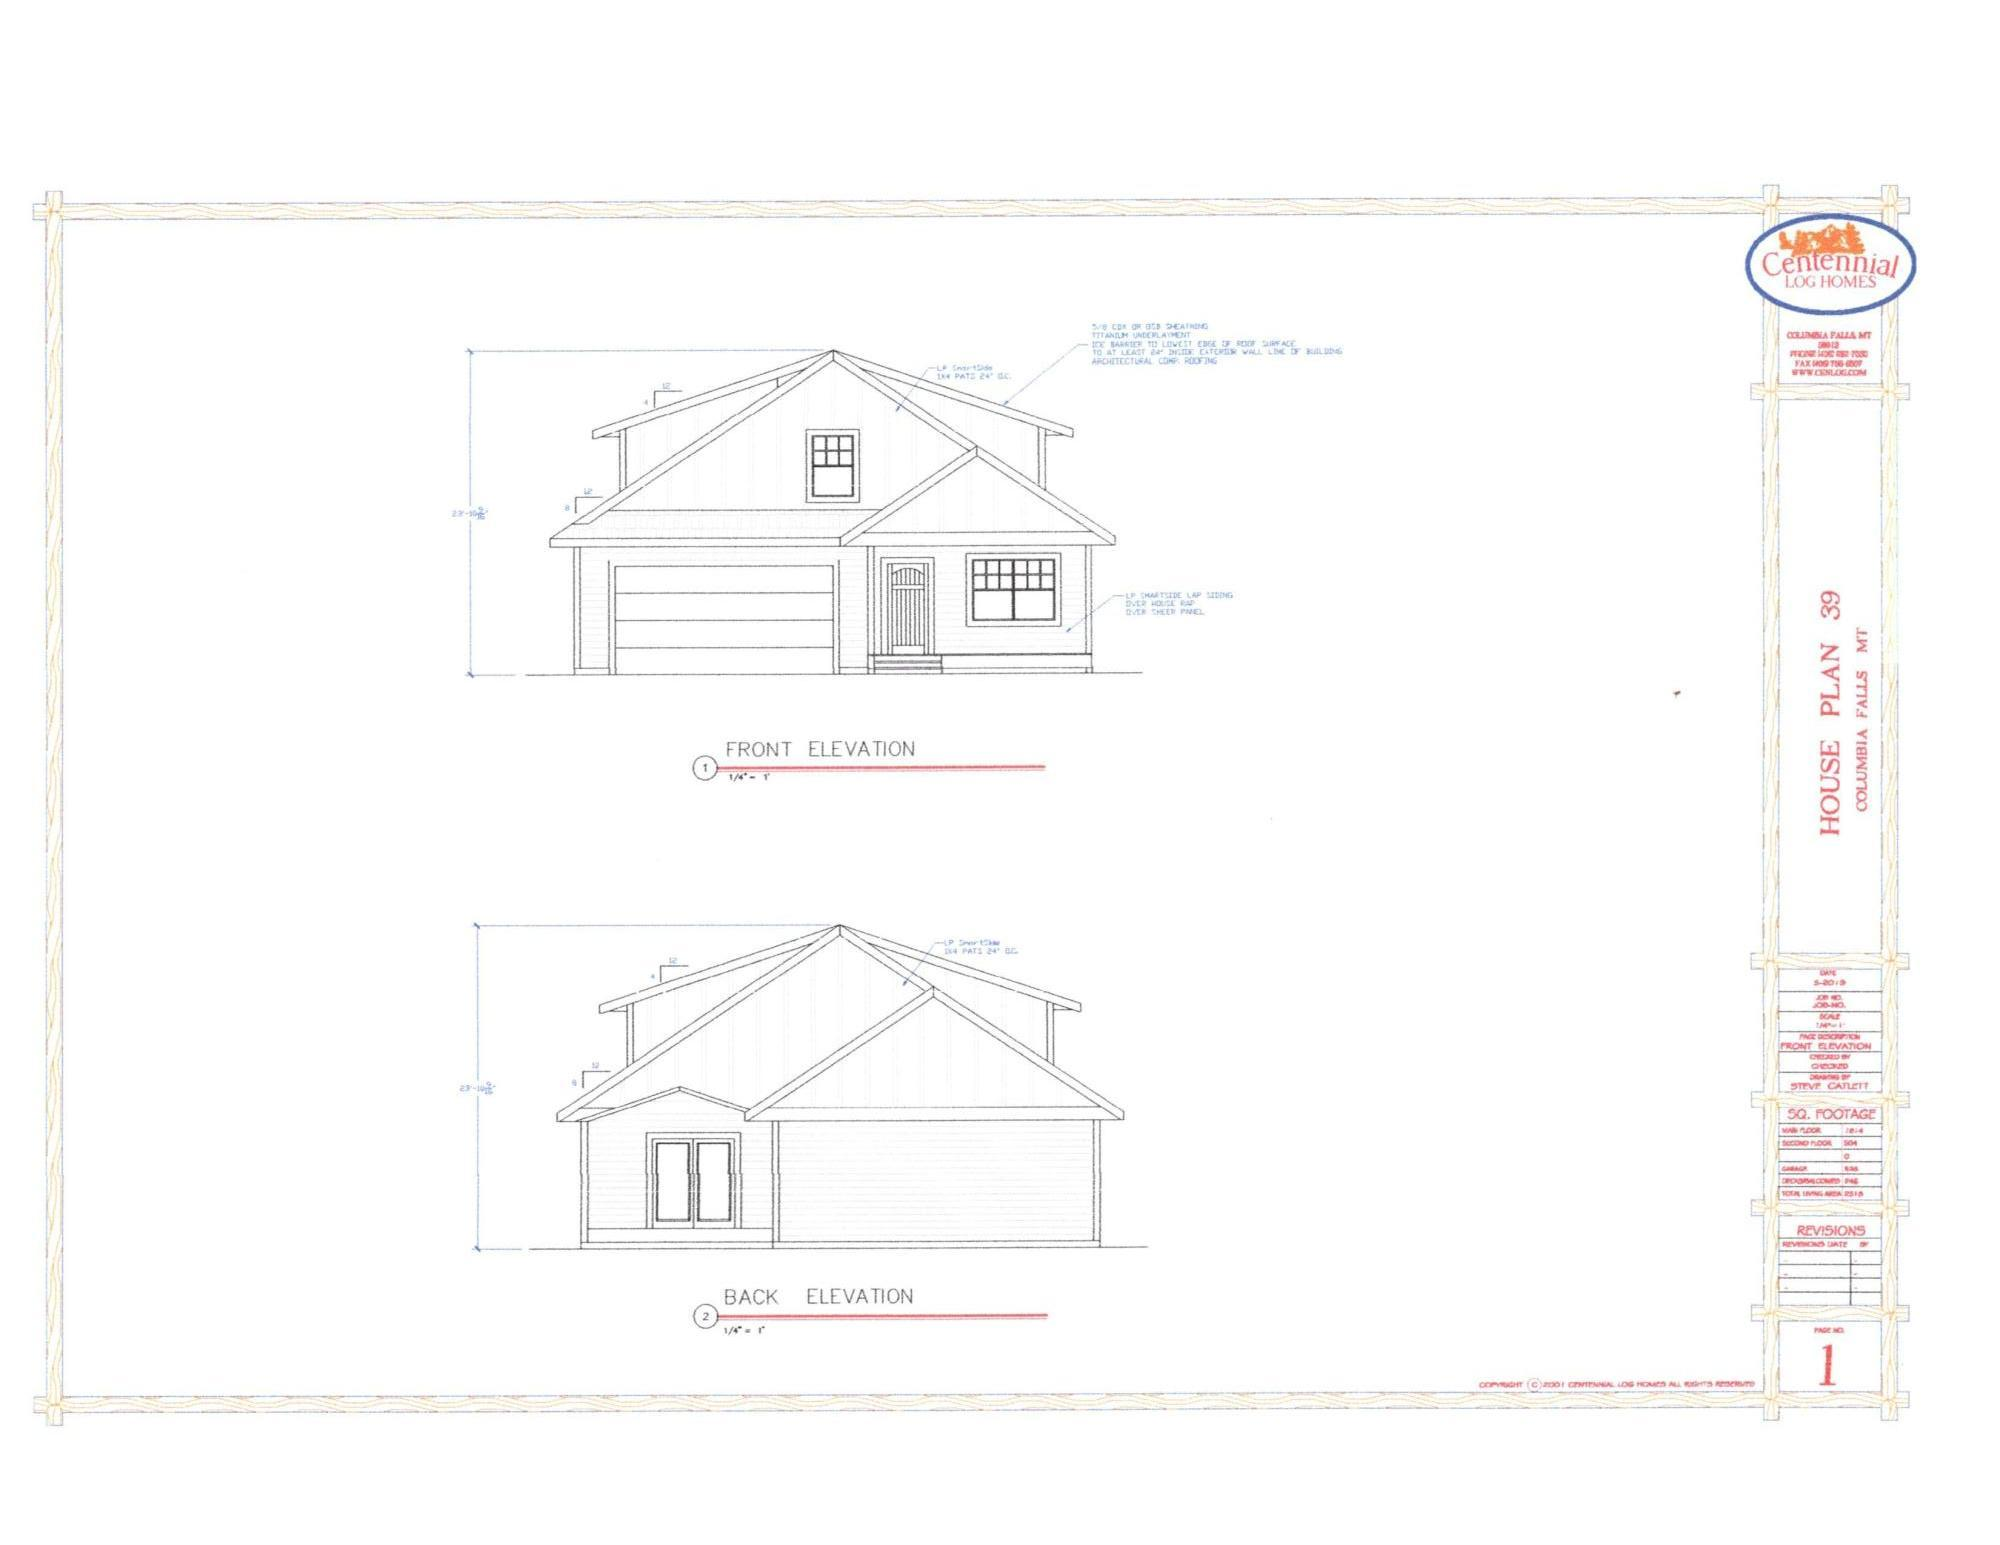 Lot 39 Front and back elevation